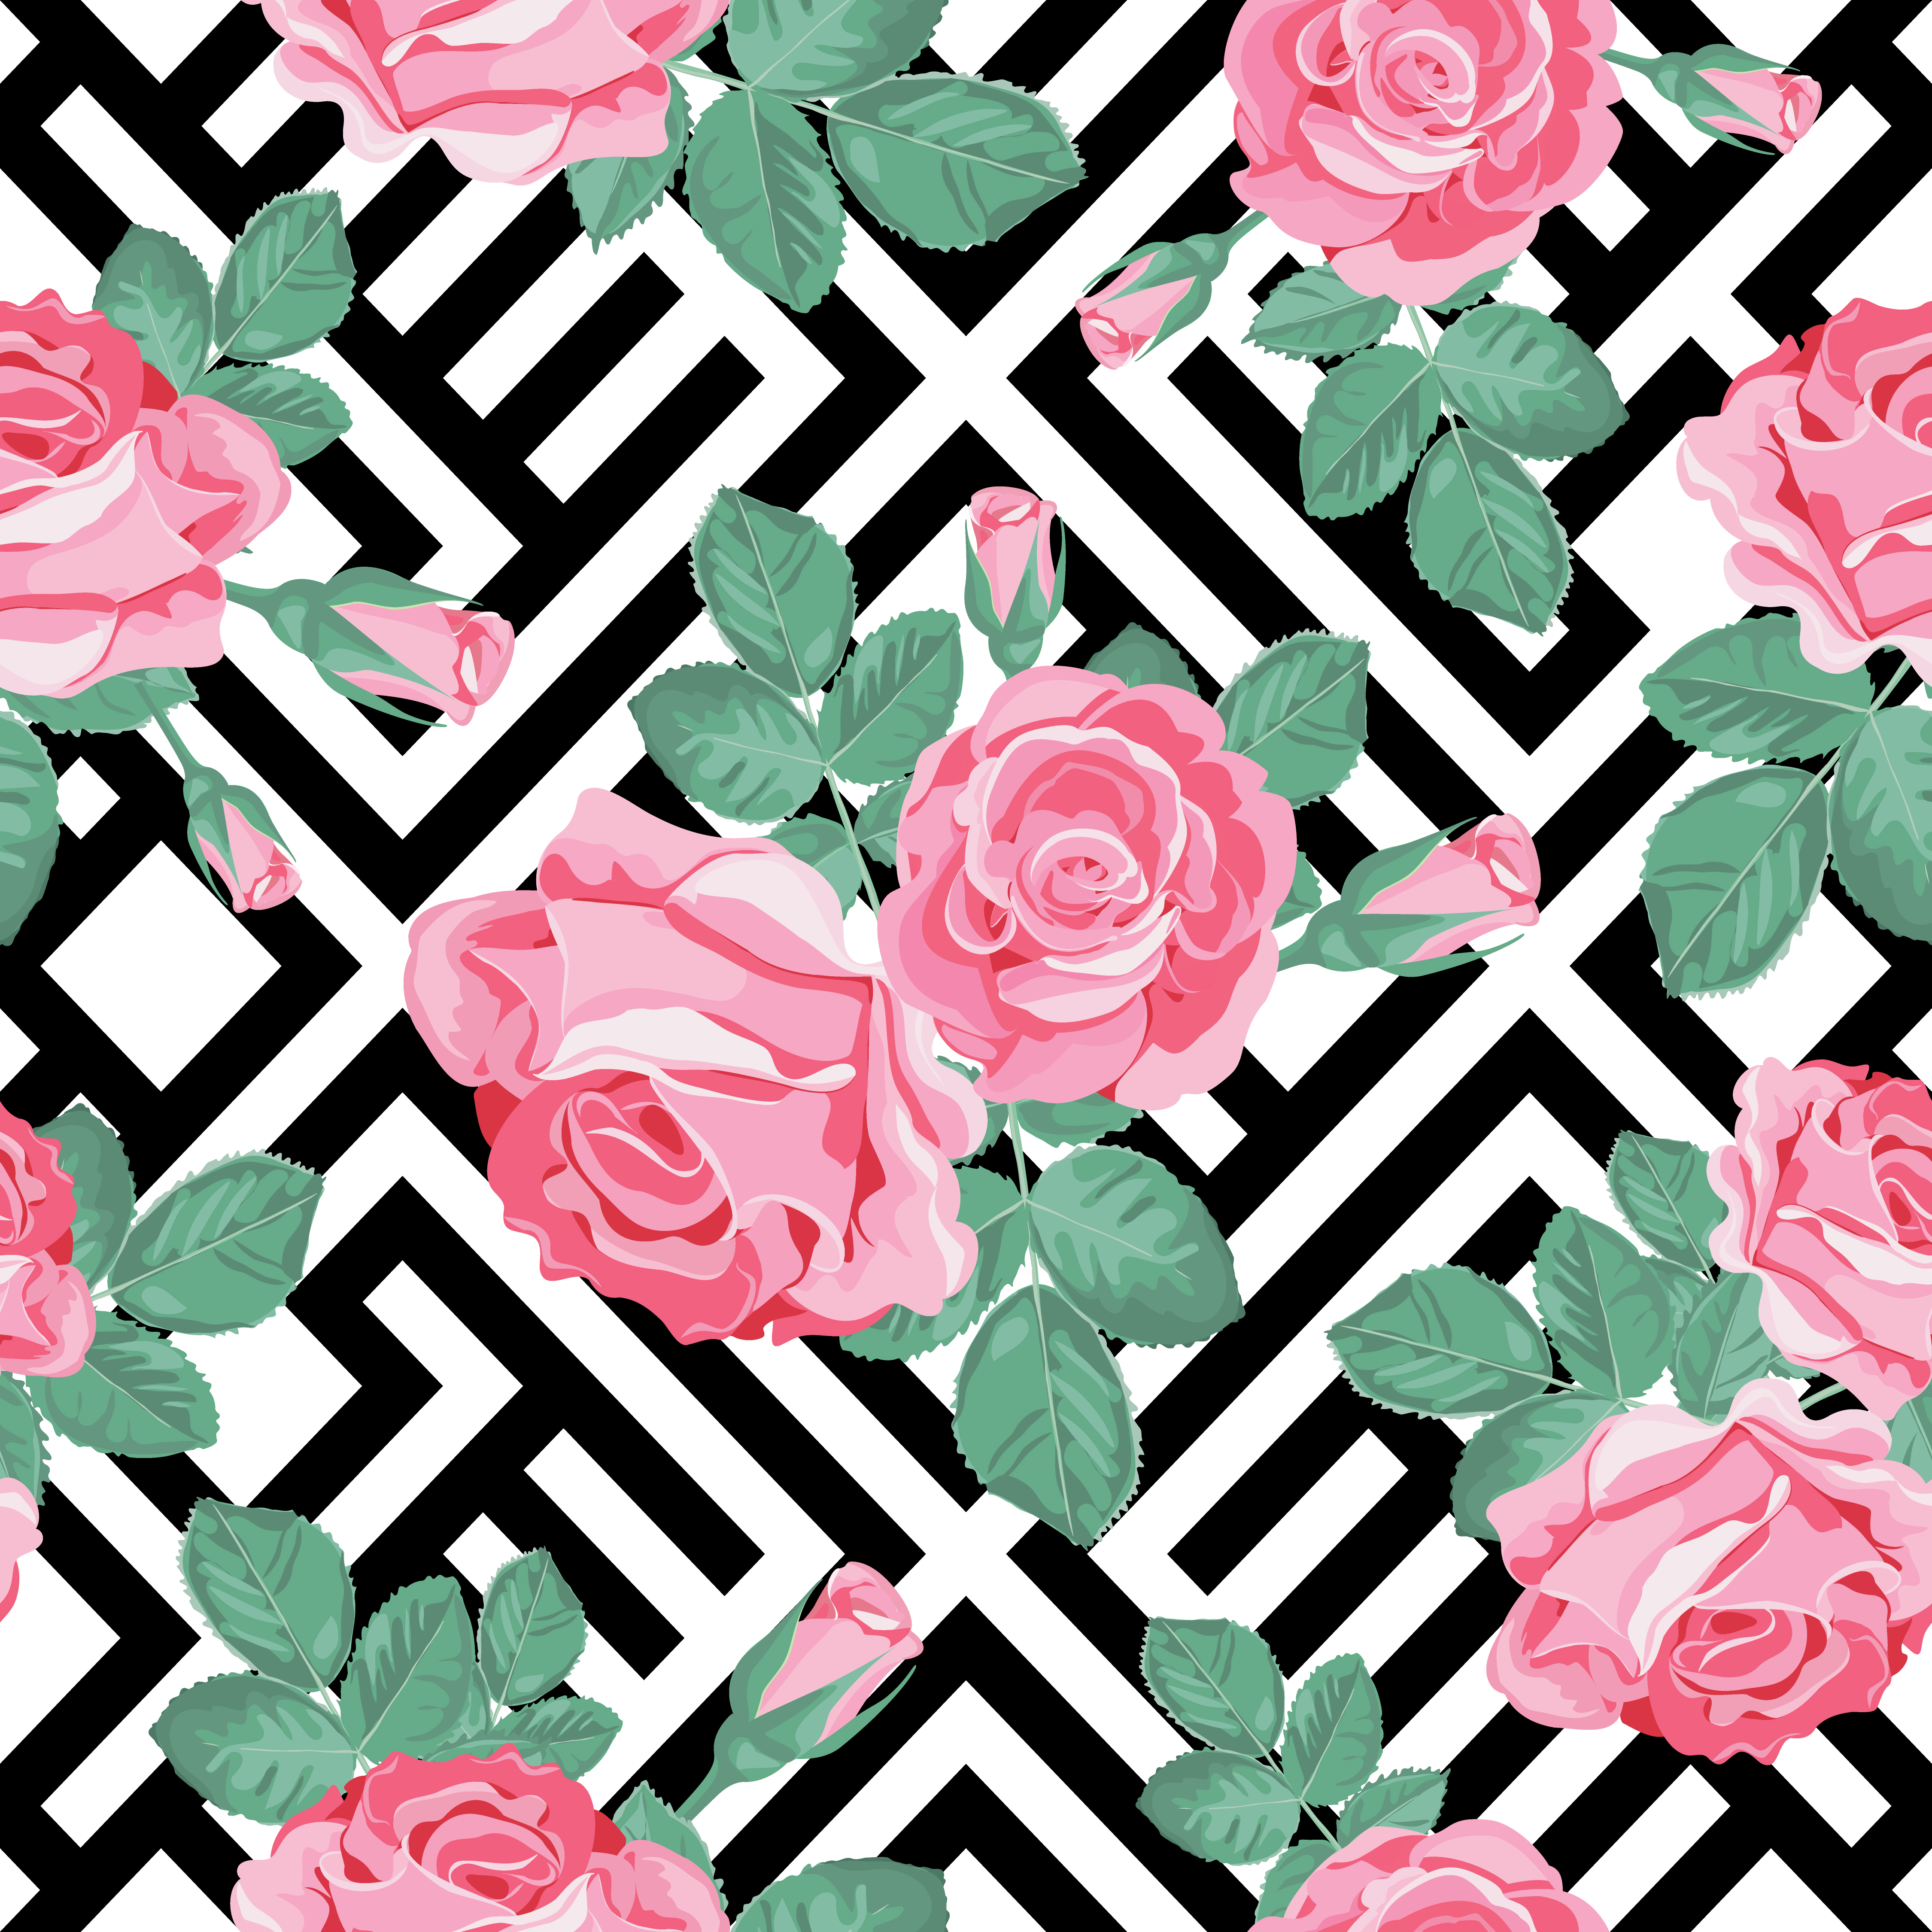 Floral Seamless Pattern Pink Roses With Leaves On Black And White